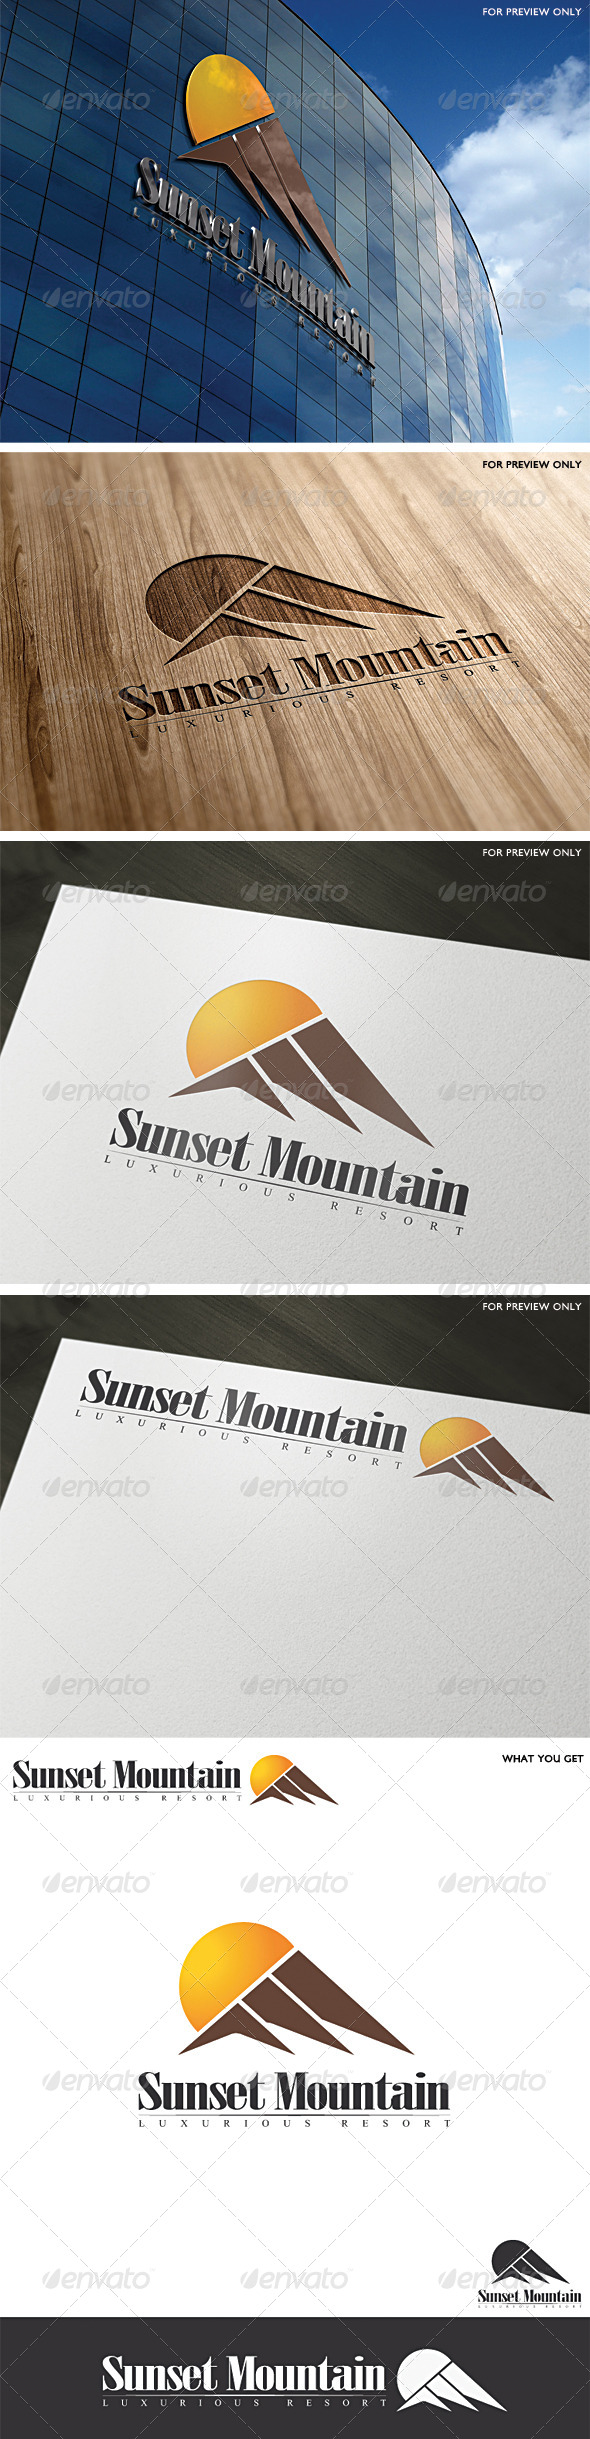 Sunset Mountain Resort Logo Template